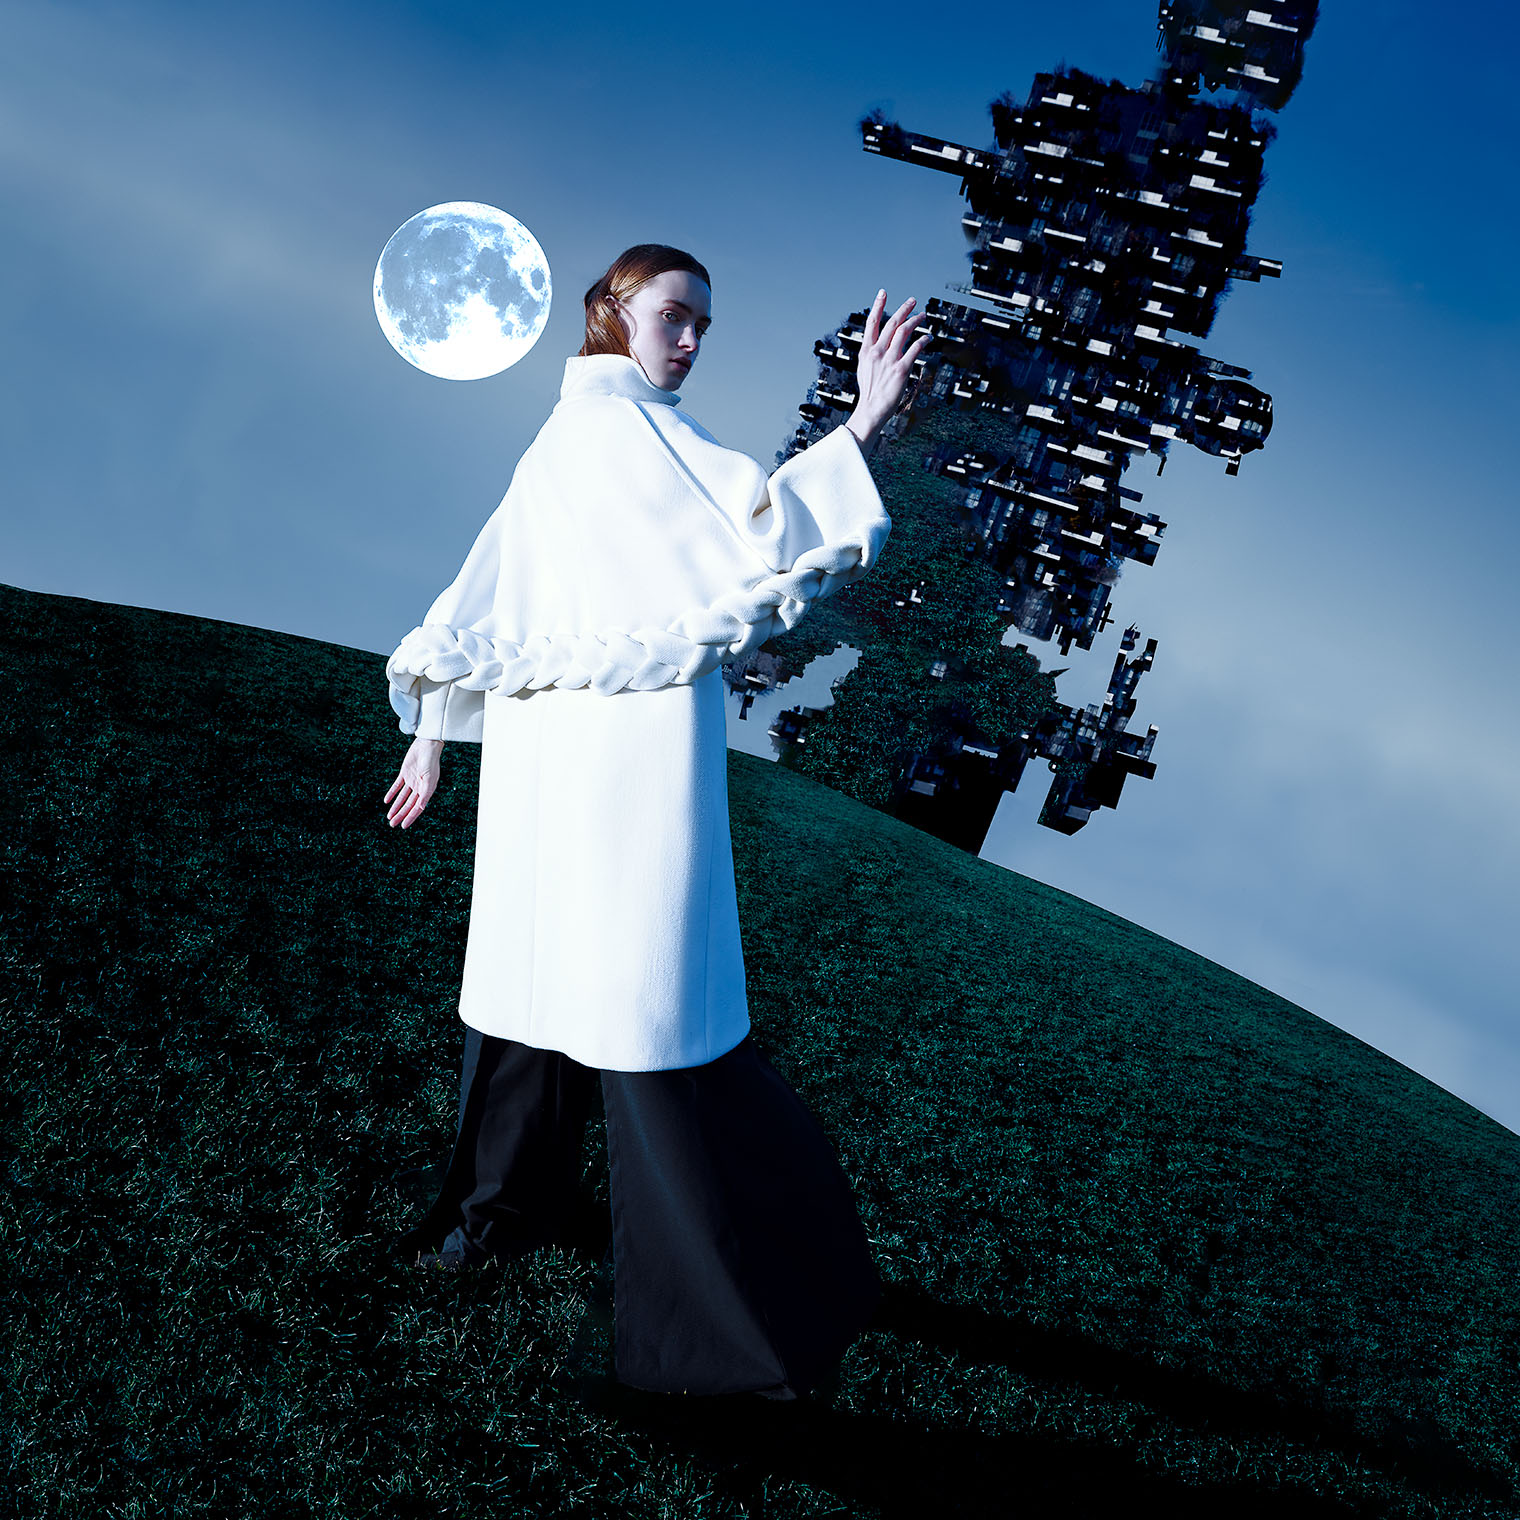 high fashion woman in white space coat on surreal planet with moon and spaceship, created by photographer Robert Wilde